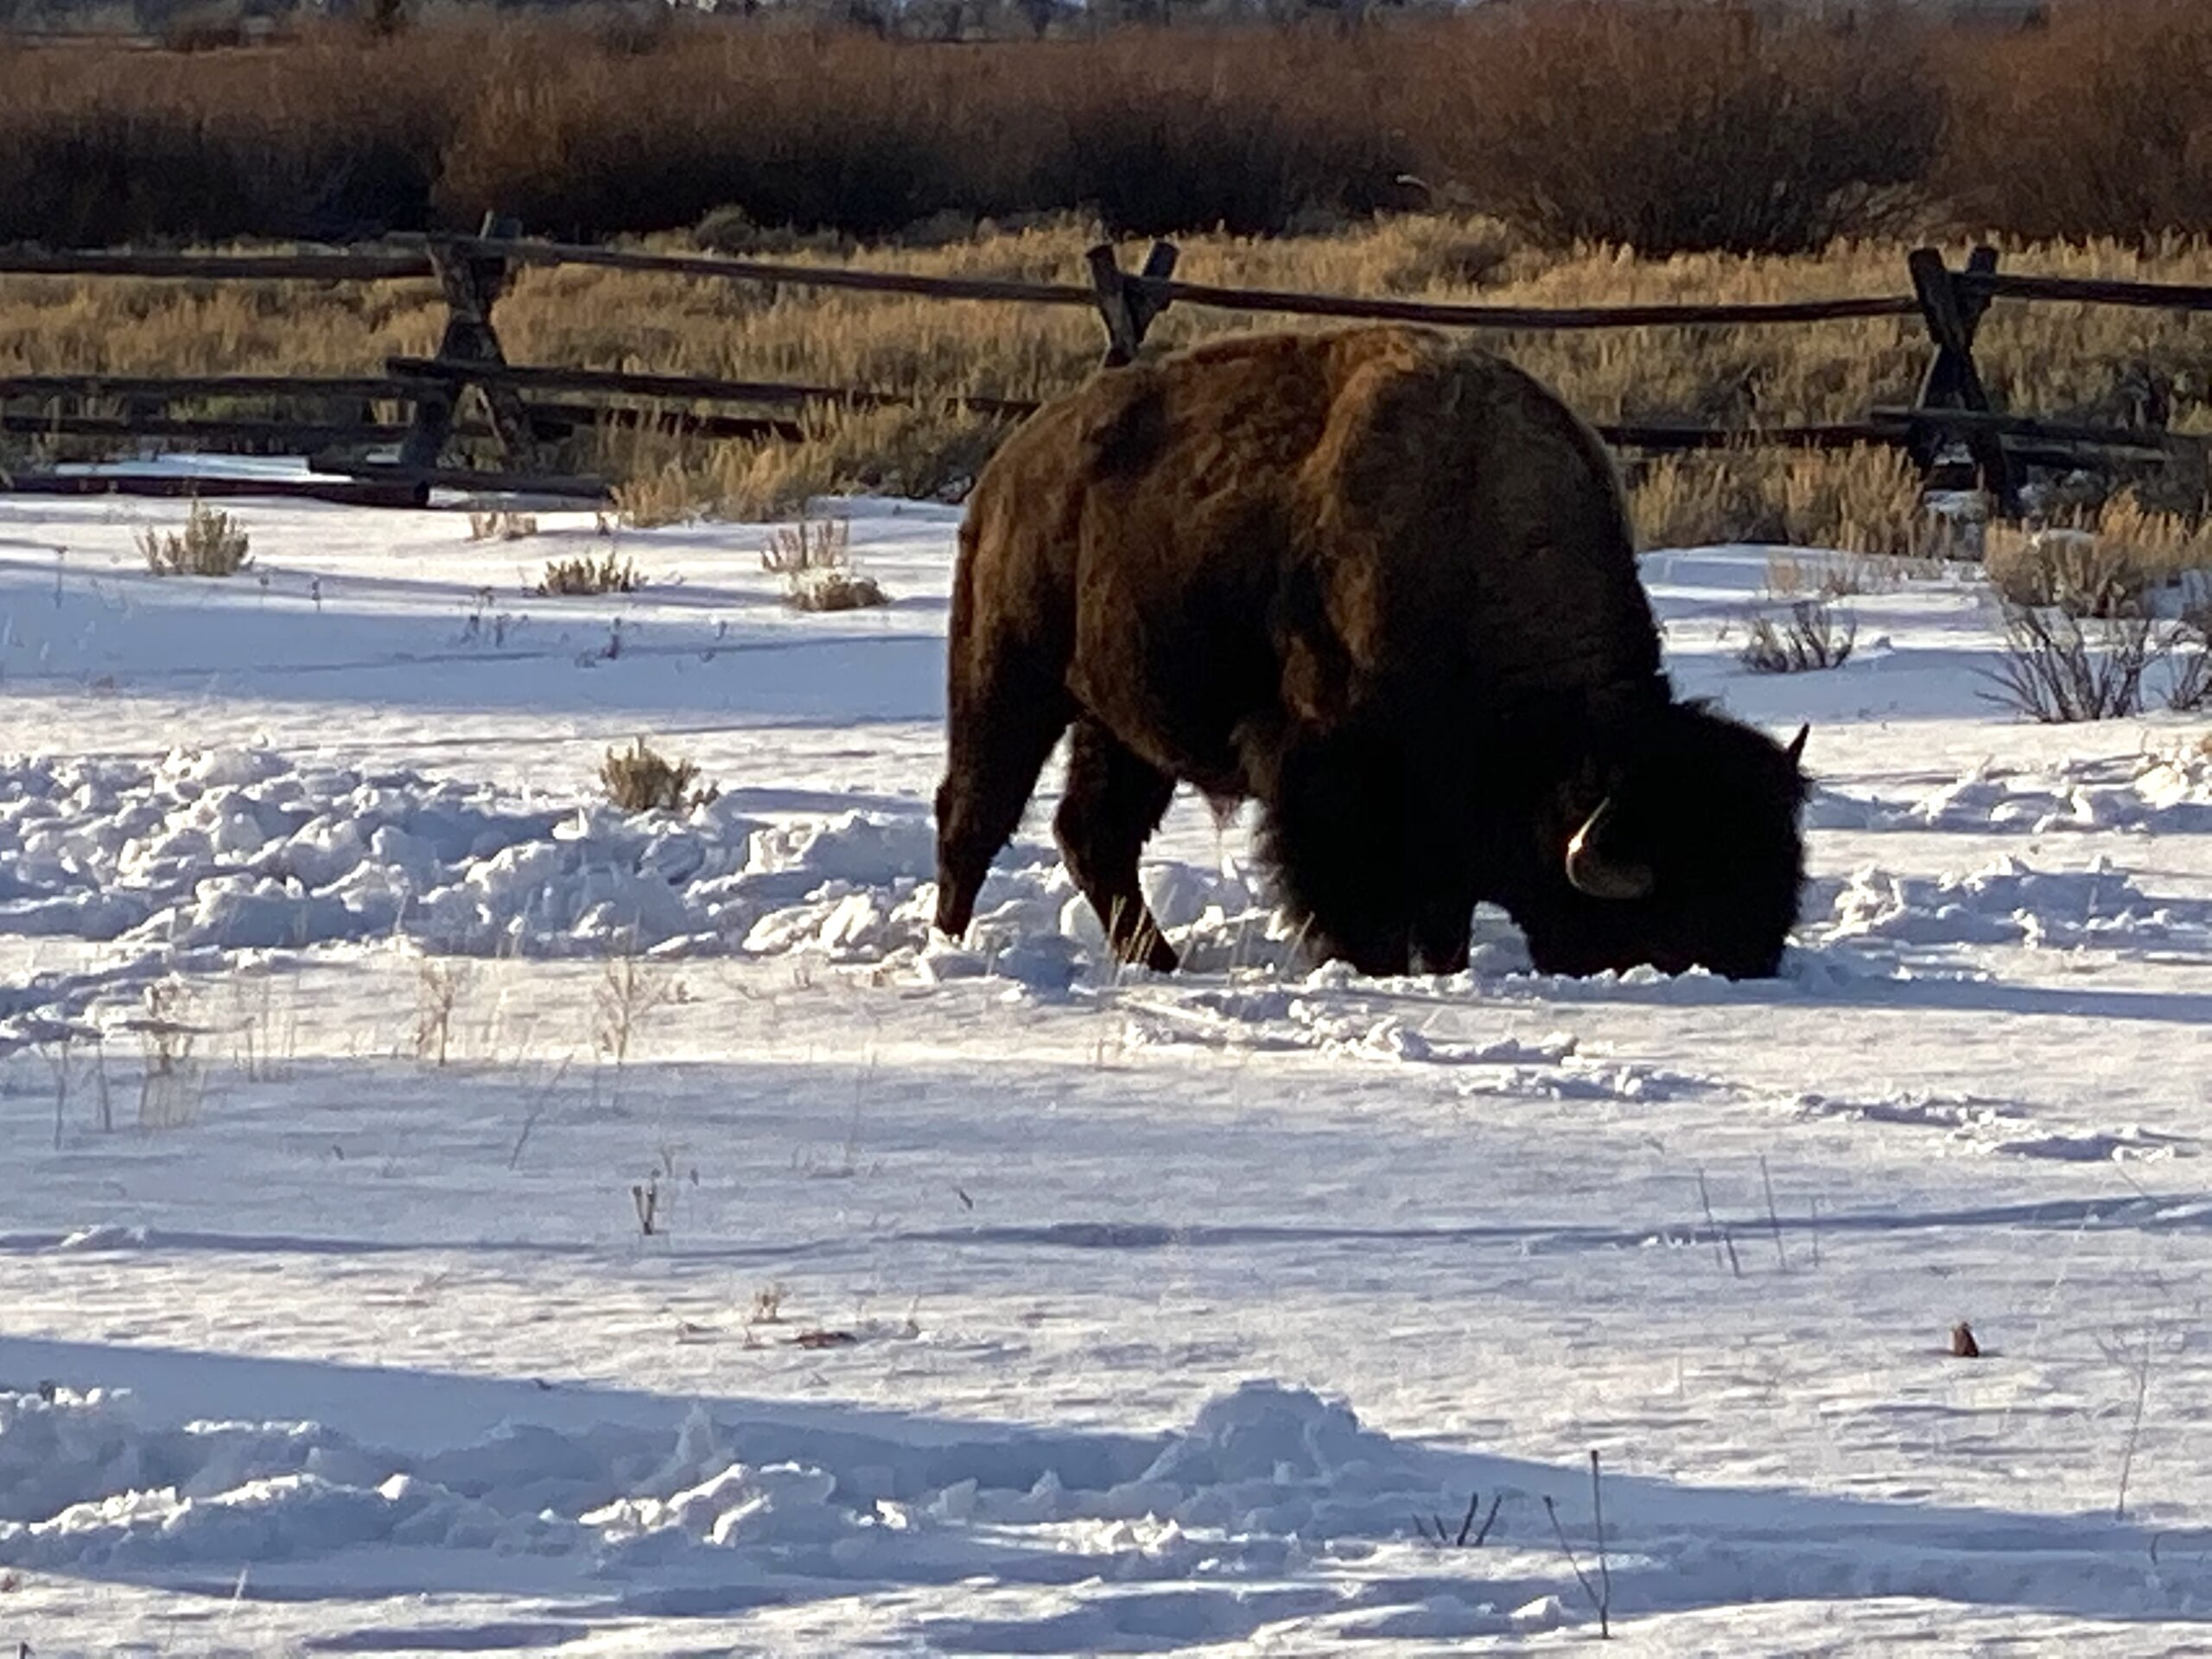 lone bison in snow